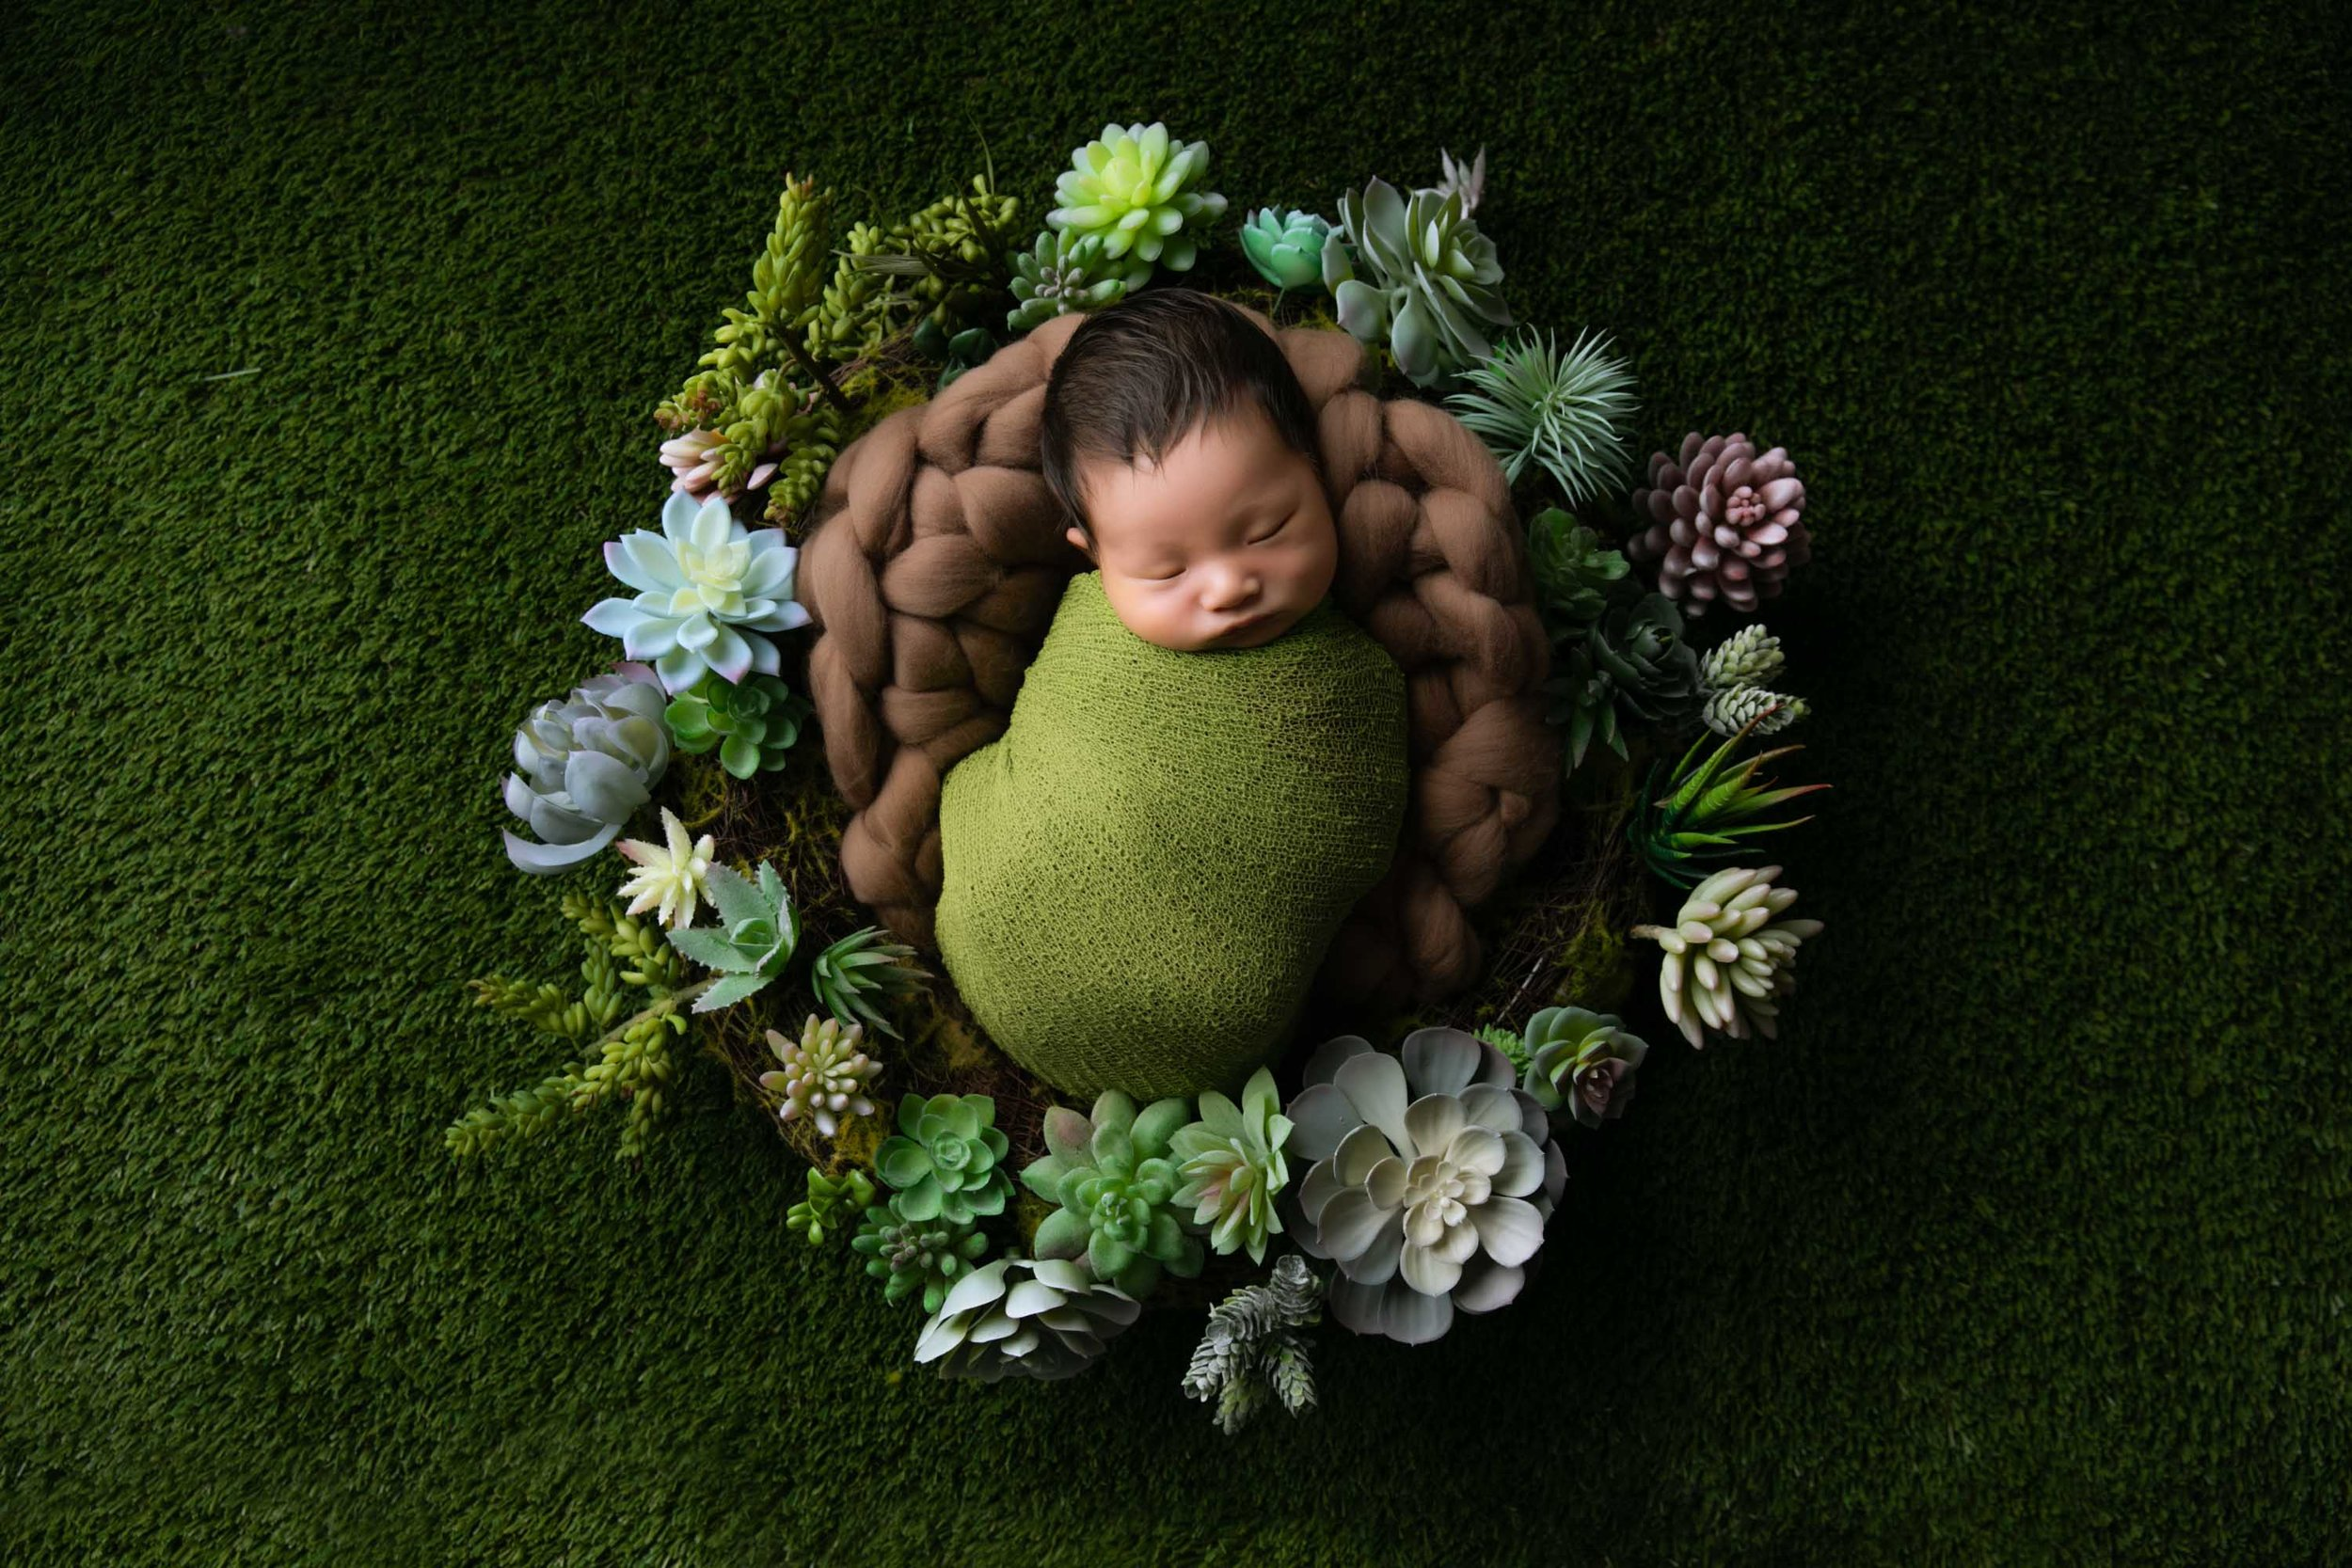 newborn photo by AnnaClaire Studio 悉尼儿童摄影